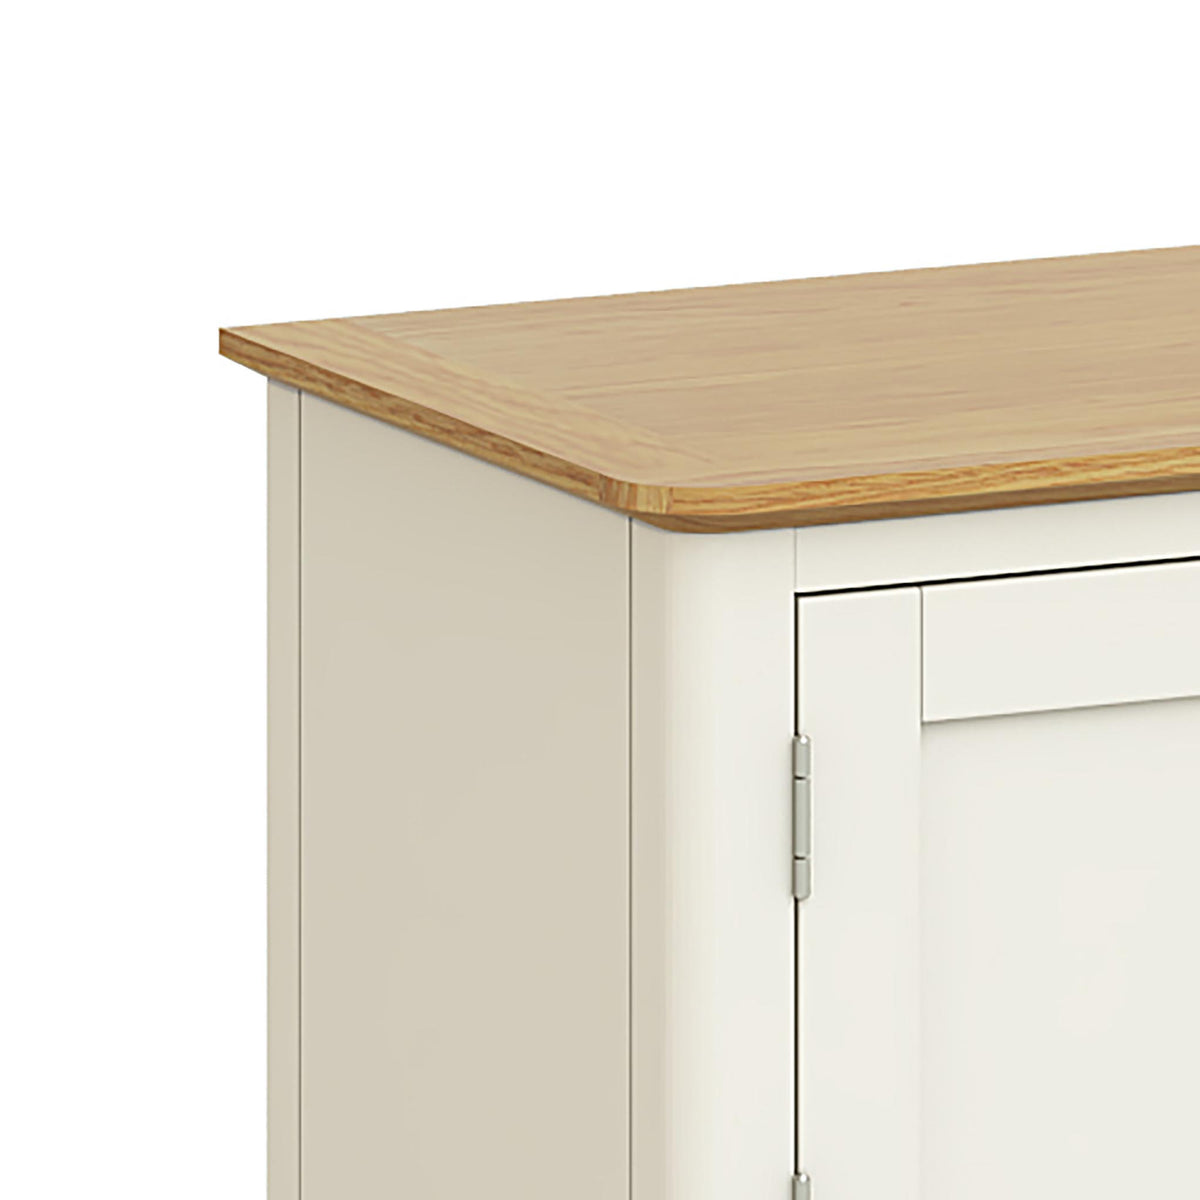 The Windsor Cream Small 90cm Oak Top TV Stand - Close Up of Oak Top